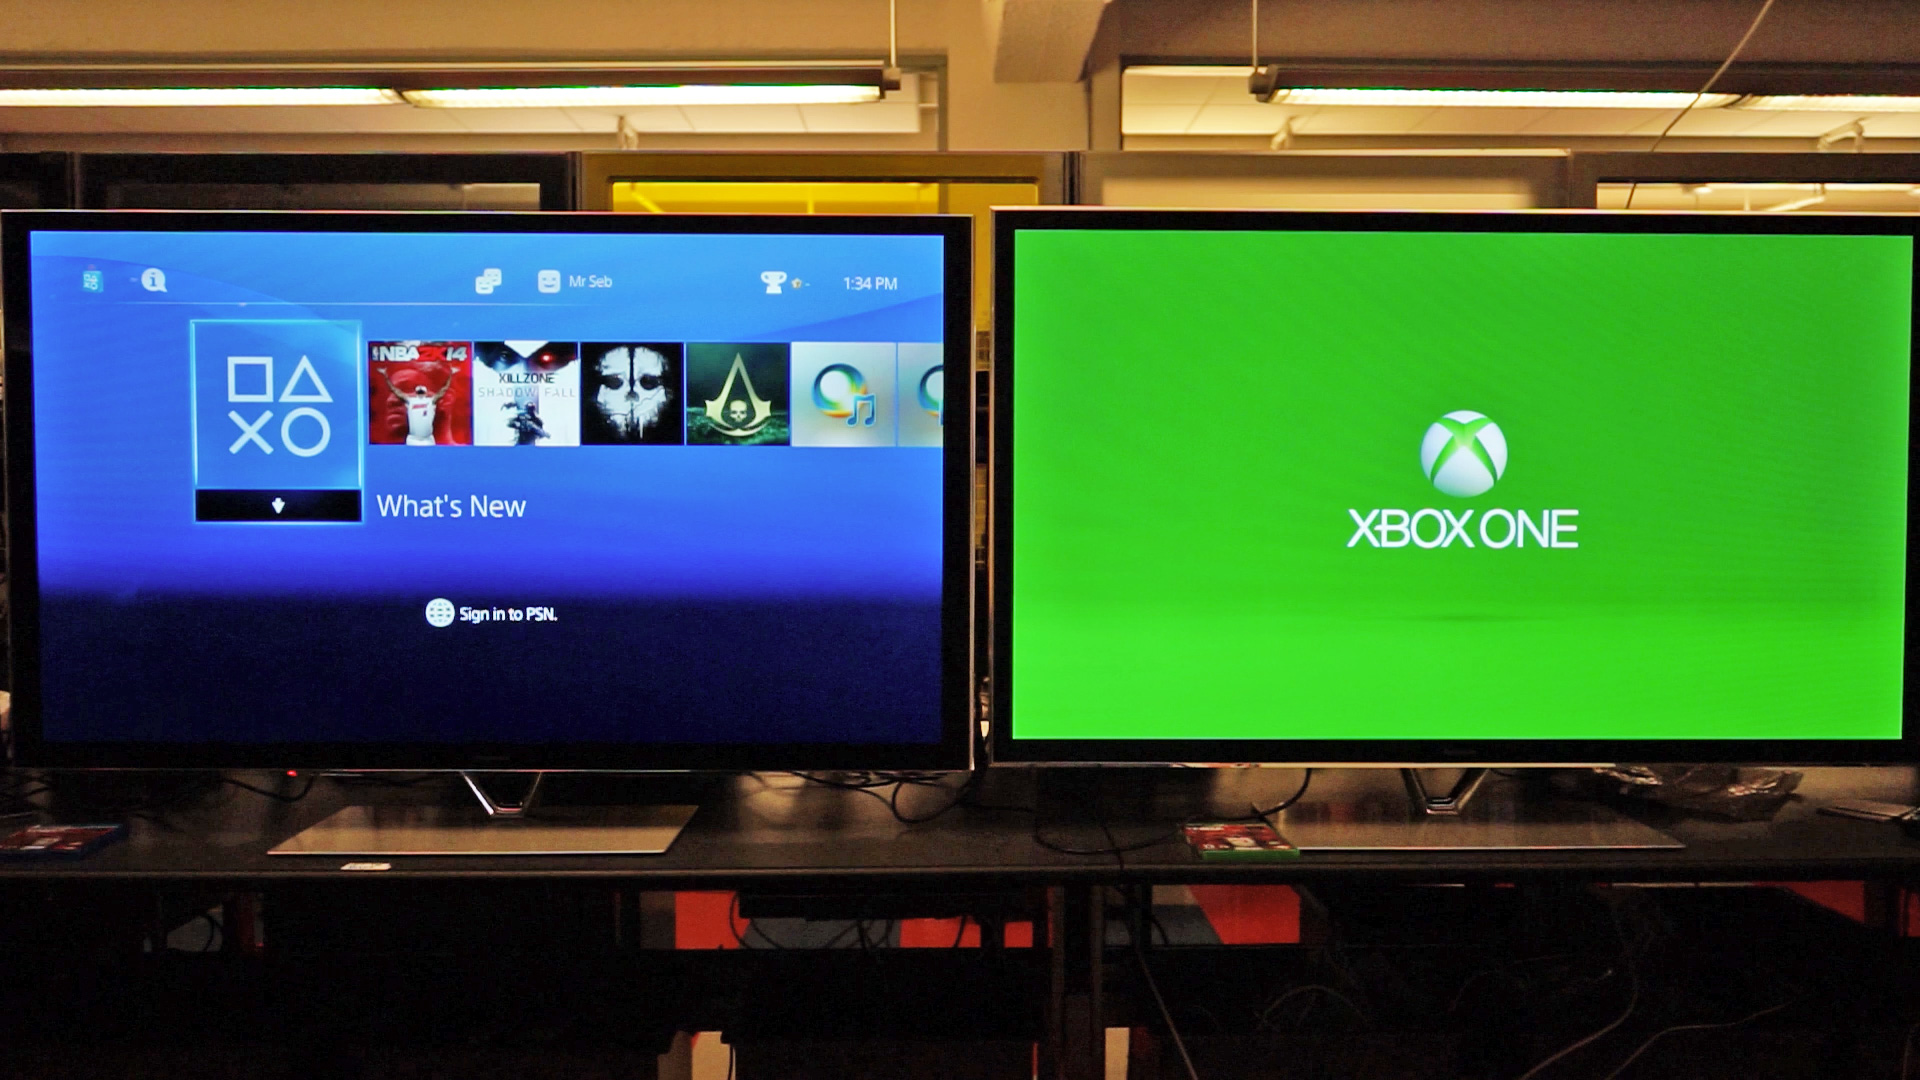 Full Hd Wallpaper For 5 Inch Screen Ps4 Vs Xbox One Side By Side Speed Tests To Decide Which